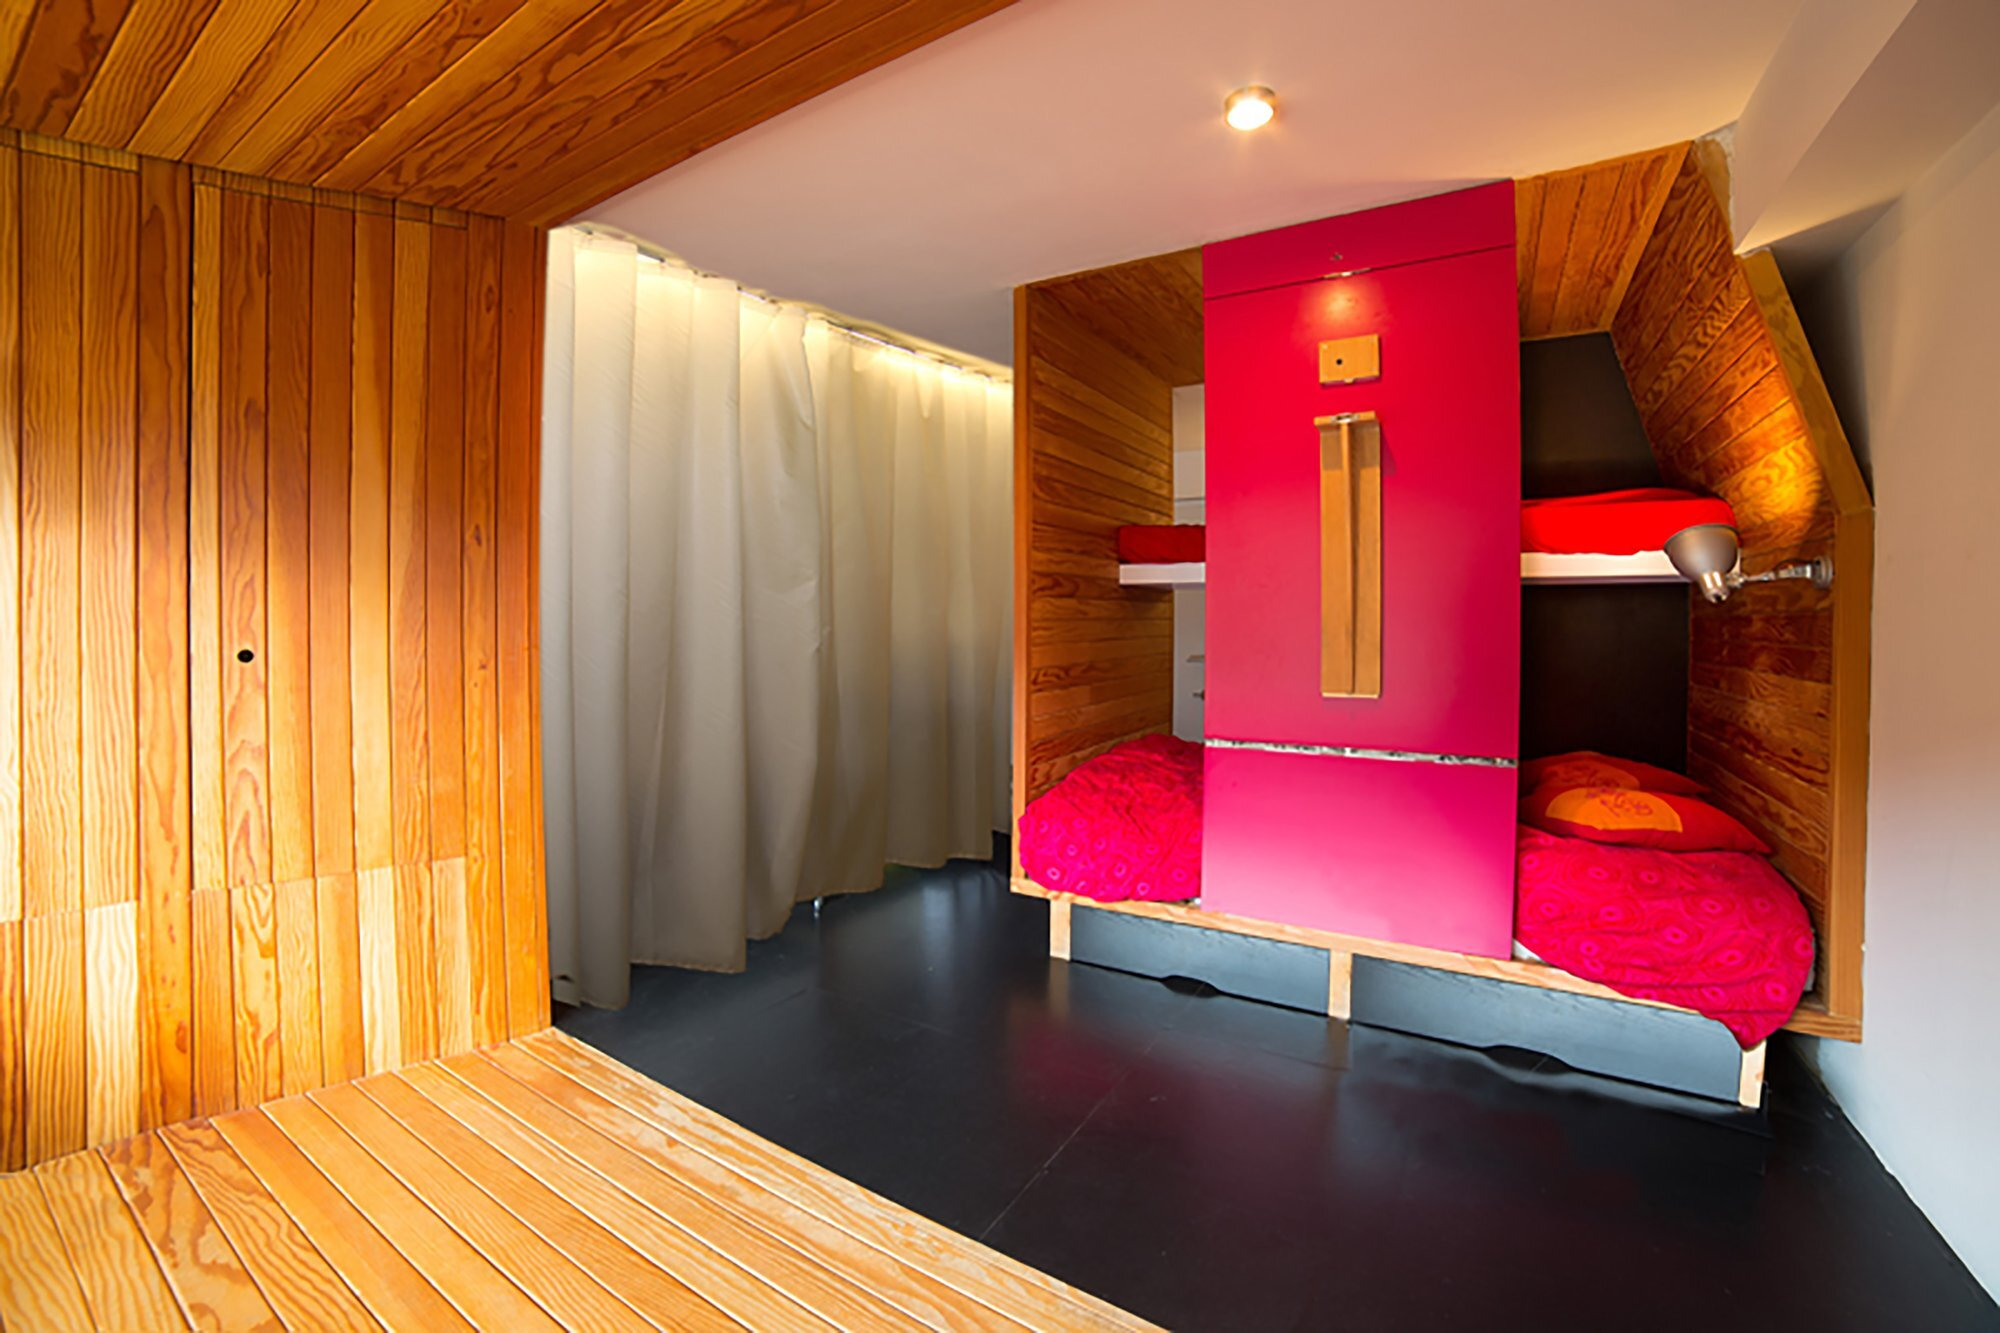 Studio in a Mountain Resort - Beriot Bernardini Arquitectos - Madrid Spain - Interior 1 - Humble Homes